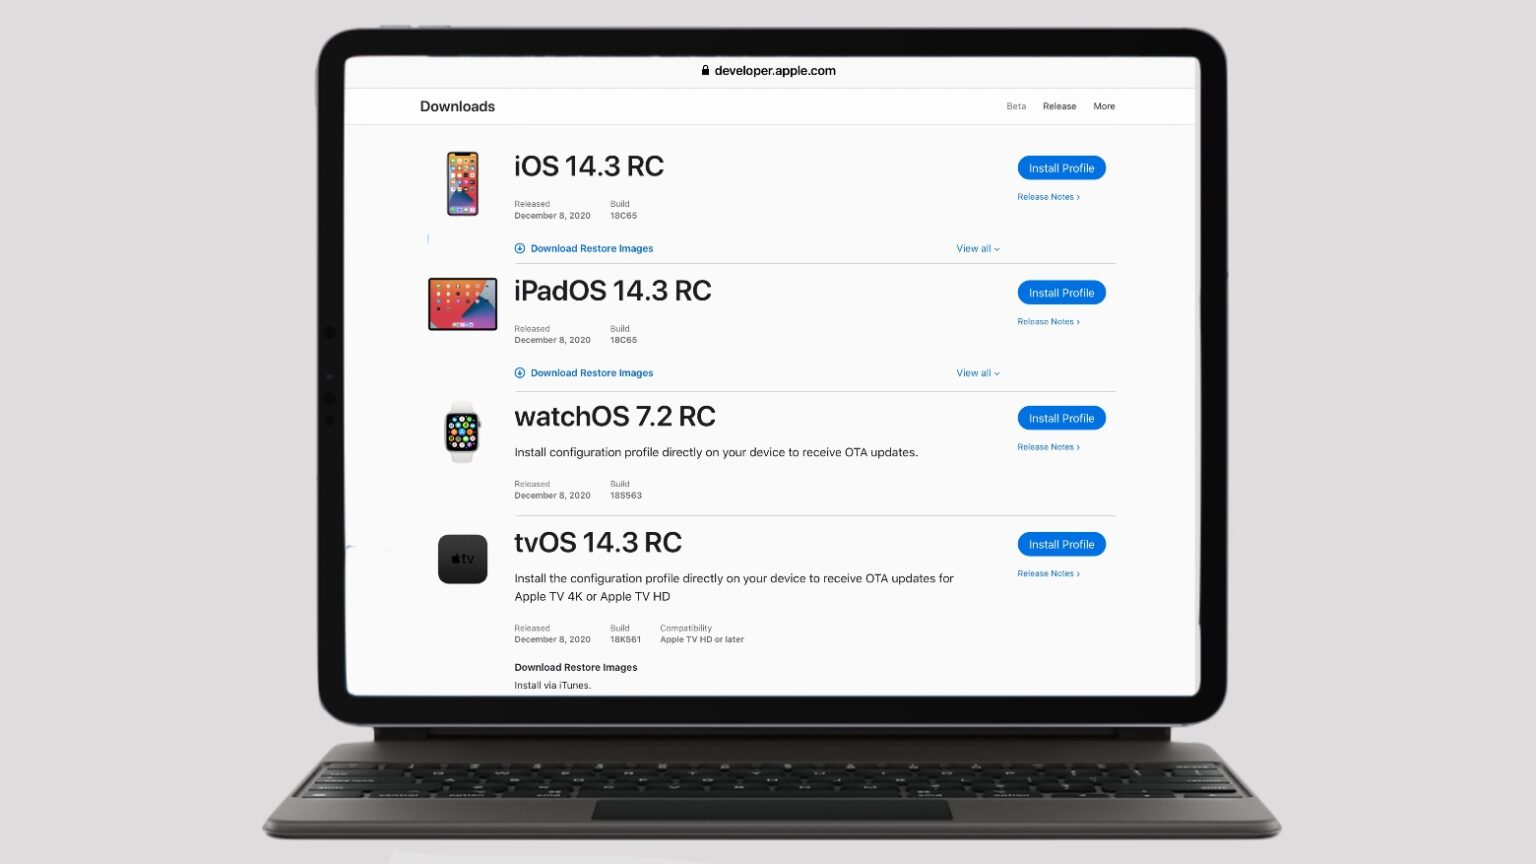 iOS 14.3 Release Candidate, iPadOS 14.3Release Candidate, watchOS 7.2 Release Candidate and tvOS 14.3 Release Candidate.